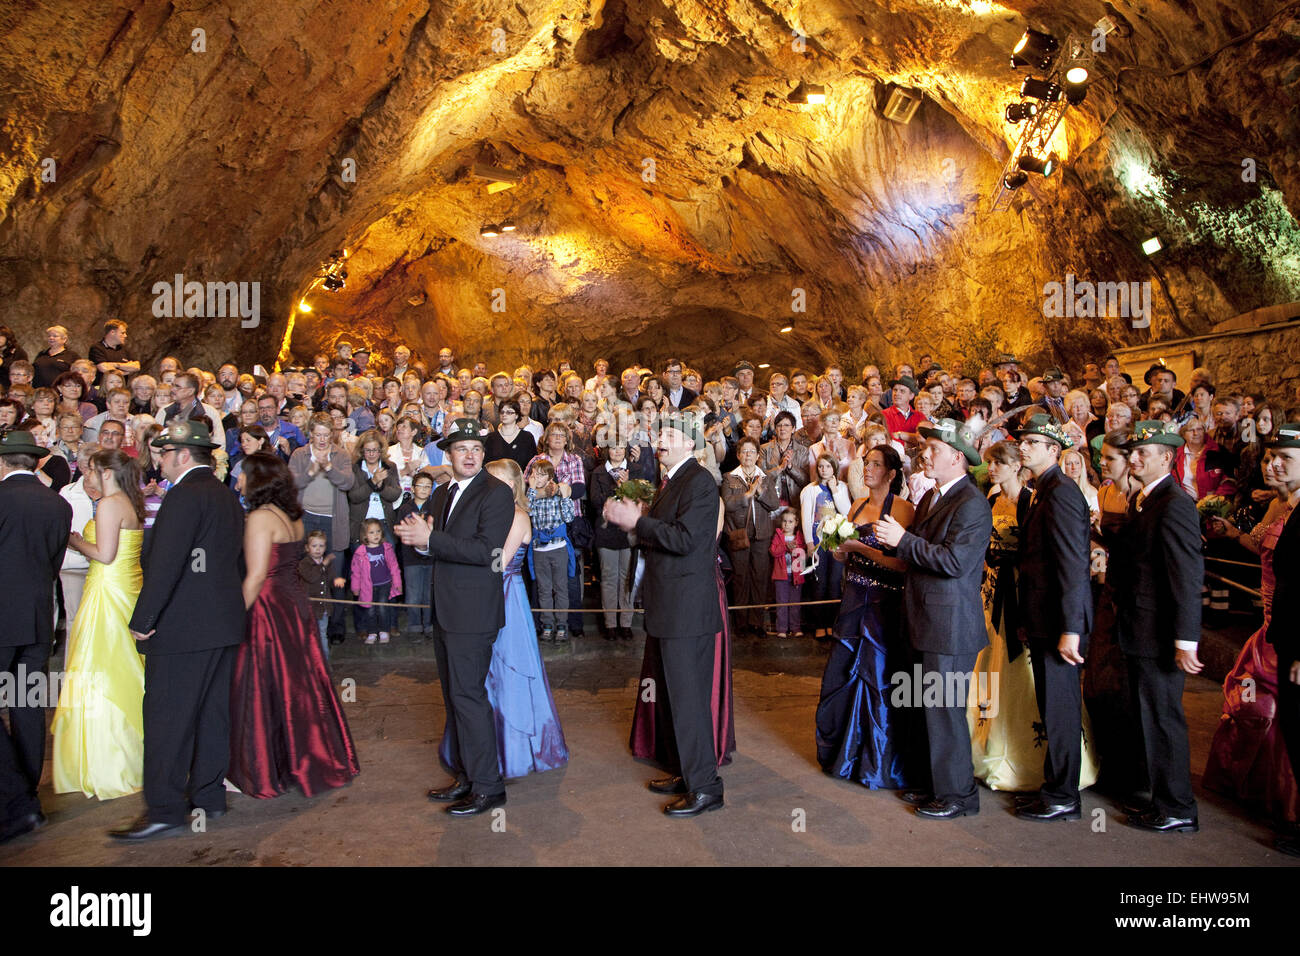 Marksmen in the Balve cave. - Stock Image